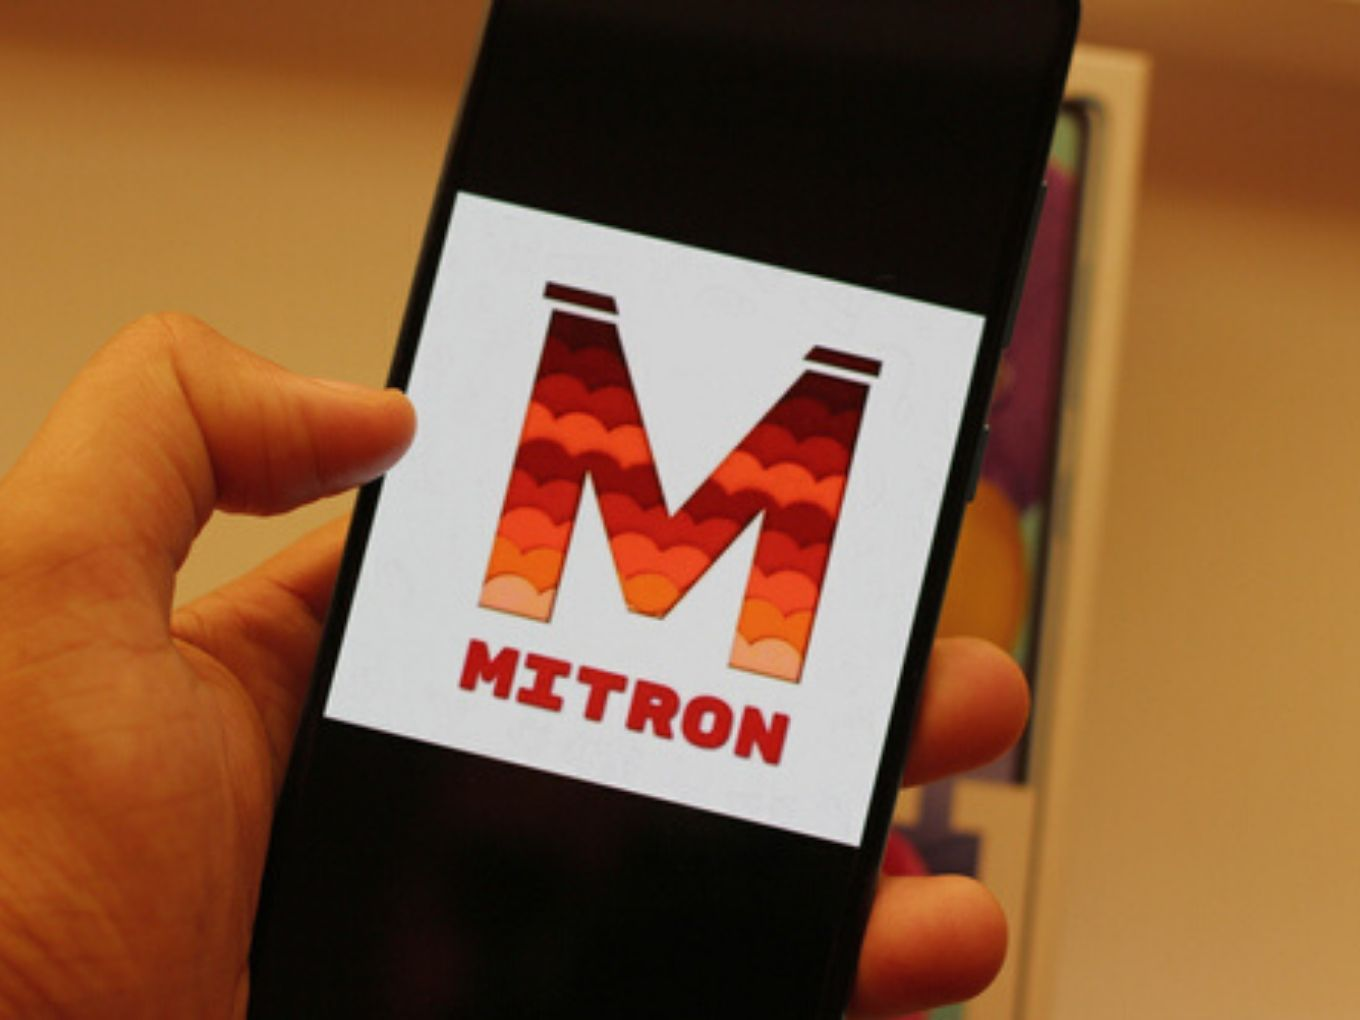 Mitron app returns to Google Play Store with UX changes